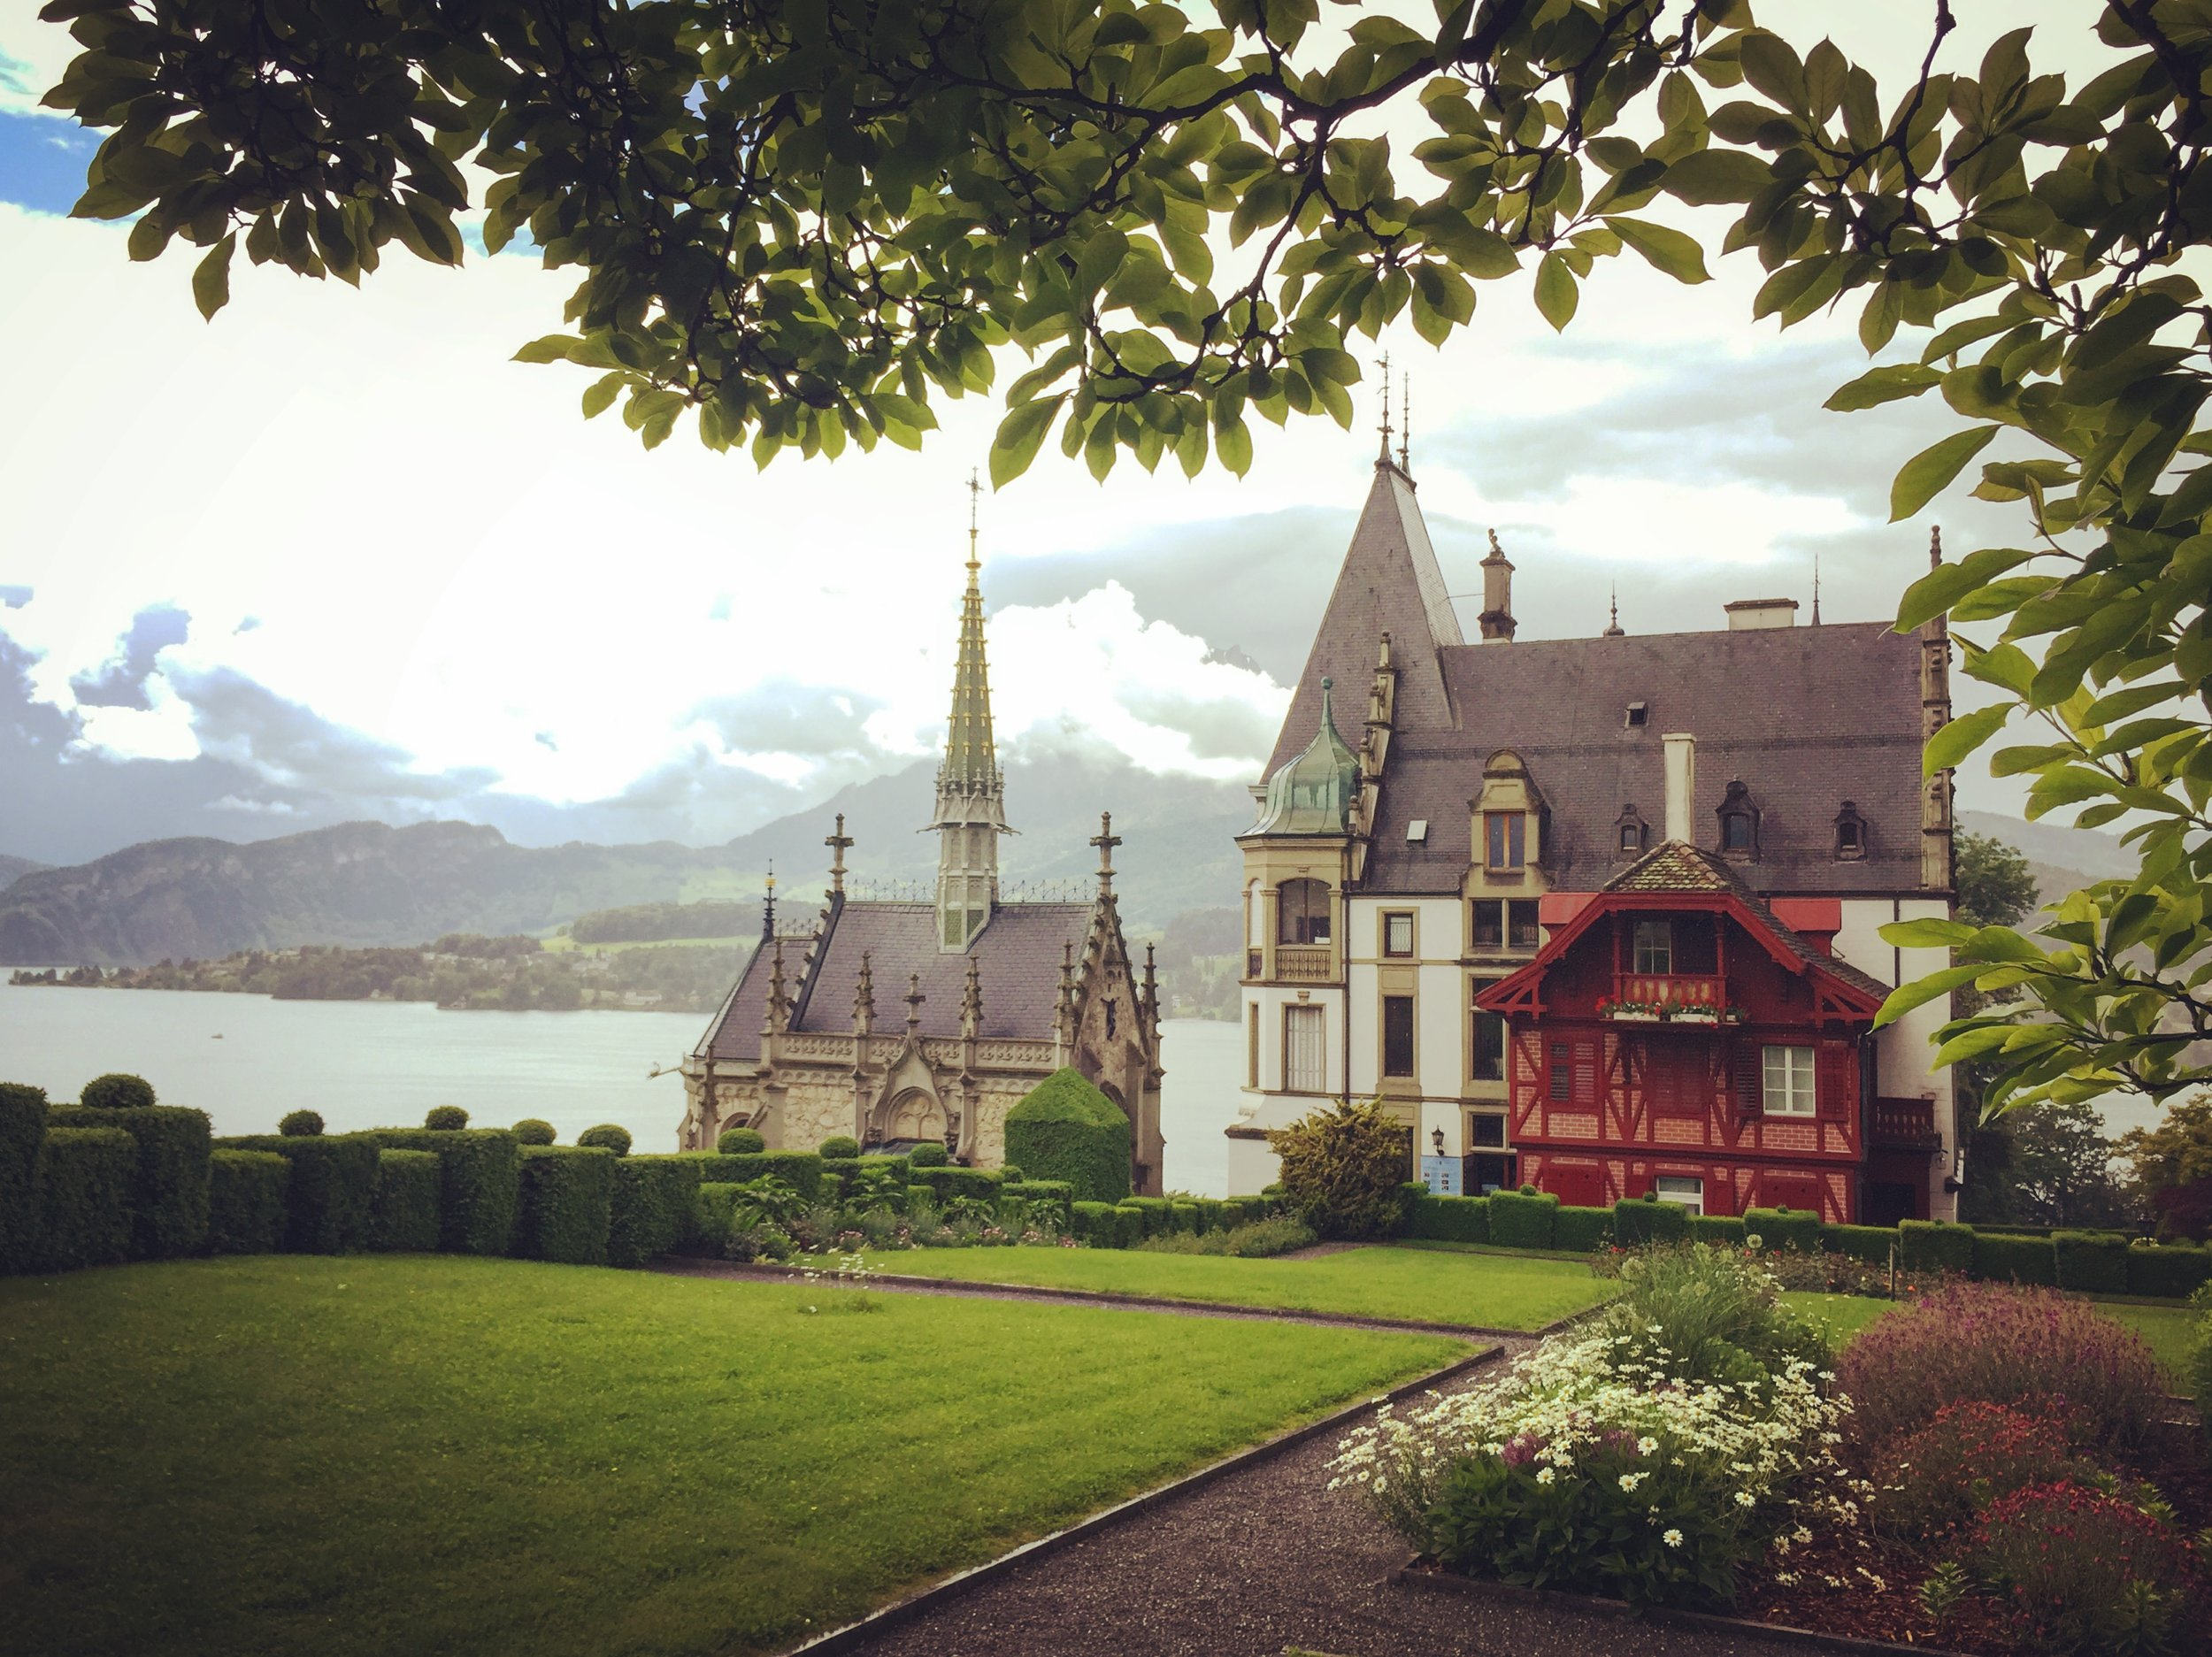 Meggen Schloss  is another magical location outside Luzern, this little castle sits on the shore of Lake Luzern, surrounded by a vineyard and a small farm. We actually had our civil ceremony there so it holds a special place in my heart. It's also one of my favorite destinations when we go for a long walk, since you can follow the paths along the lake the entire way to get there.